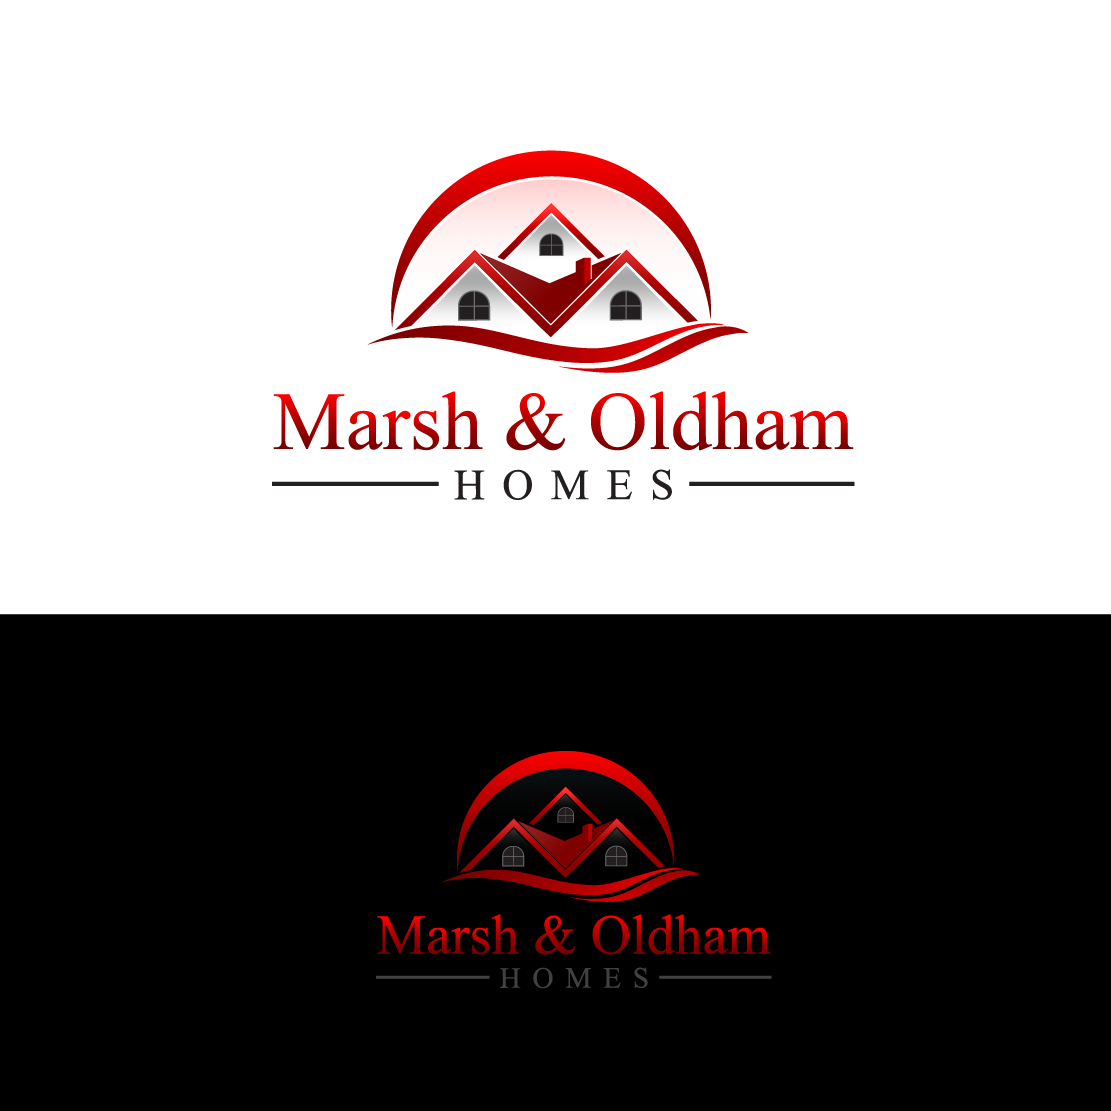 Logo Design by Private User - Entry No. 88 in the Logo Design Contest Artistic Logo Design for Marsh & Oldham Homes.